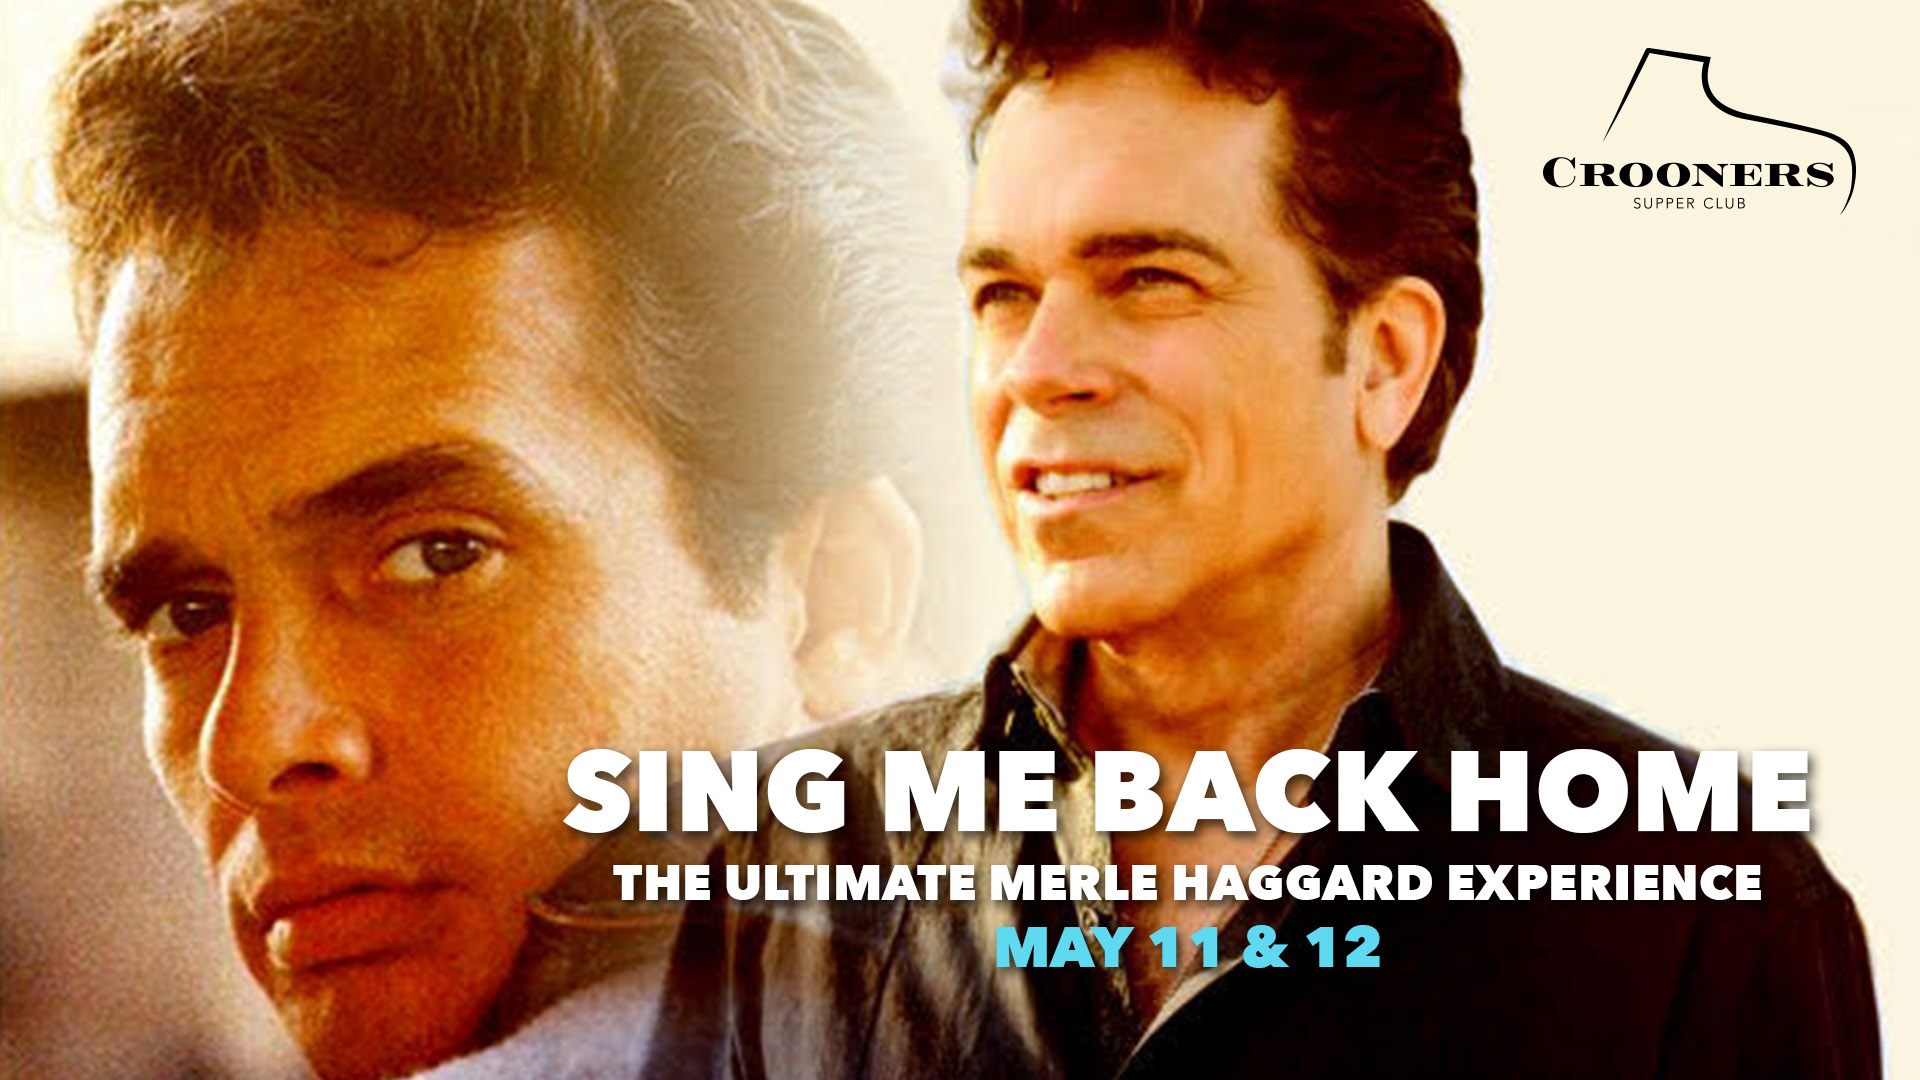 Sing Me BAck Home - The Ultimate Merle Haggard ExperienceFeaturing MN Music Icons Bobby Vandell, Melanie Rosales & Bruce McCabe